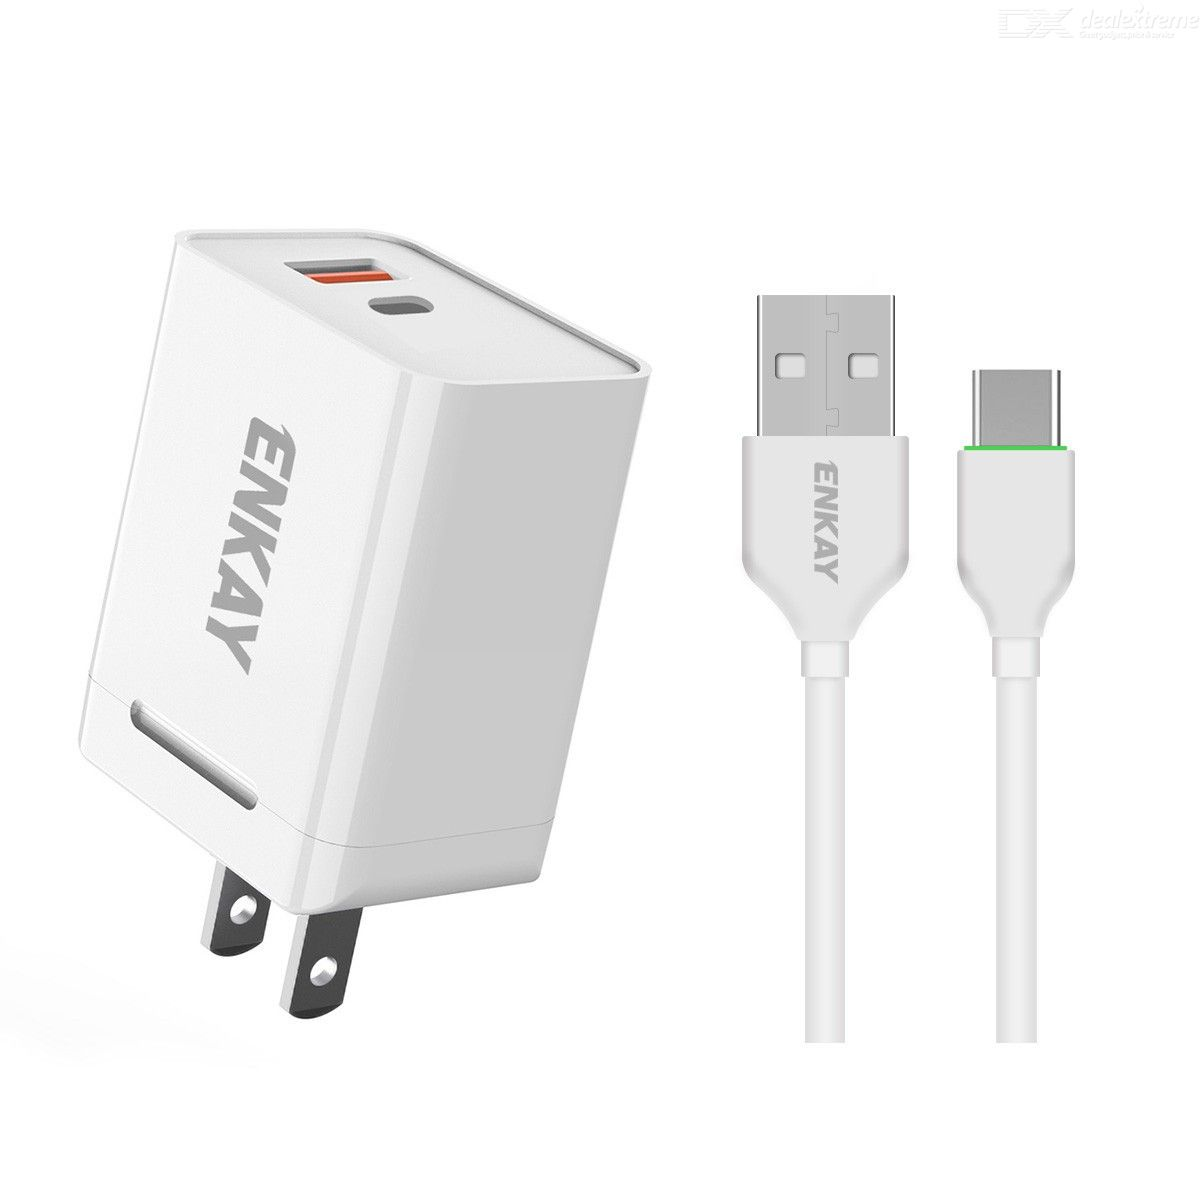 Hat-Prince ENKAY 18W USB + Type-C Power Adapter QC3.0 PD Super Fast Charging US Plug Portable Travel Charger With Micro USB Cabl